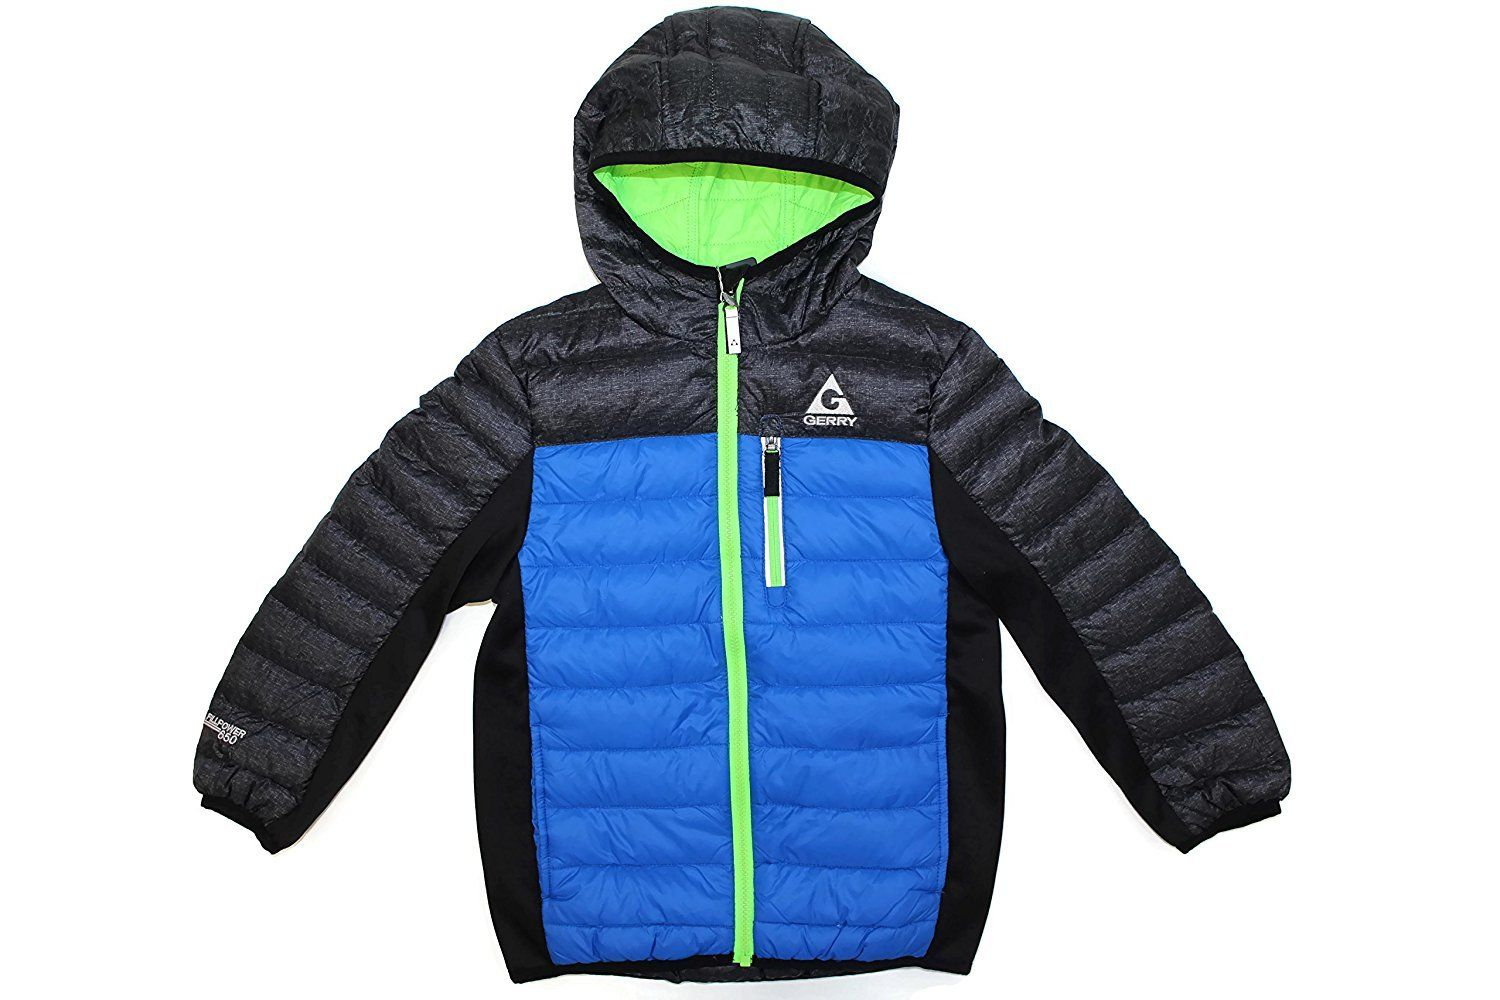 8ff42b4a0 Gerry Boys Size Large(14 16) Hooded Puffer Down Jacket